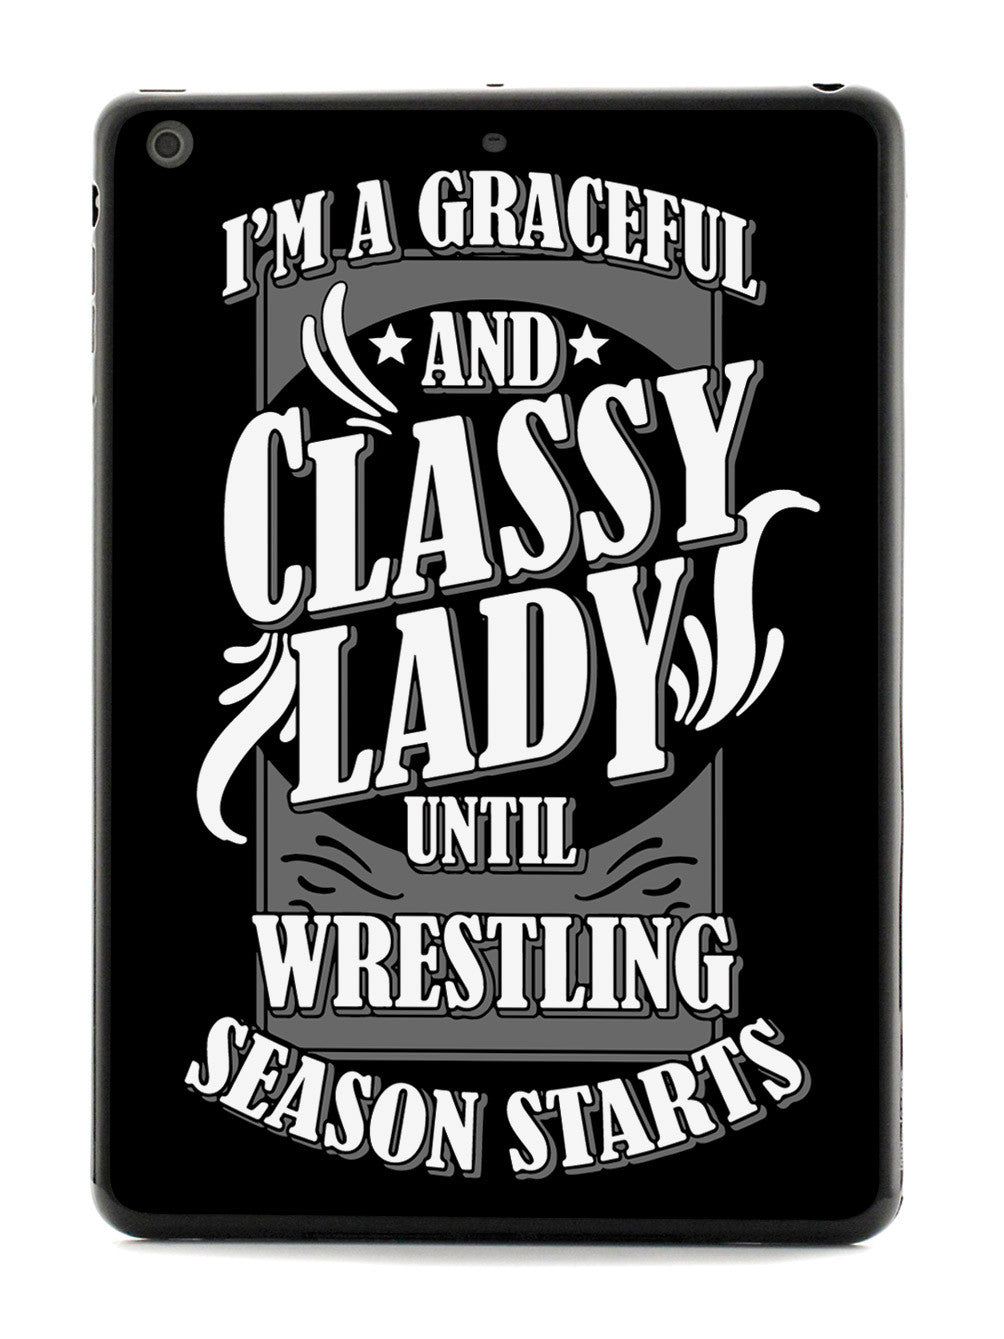 Classy Lady Until Wrestling Season Starts - Black Case